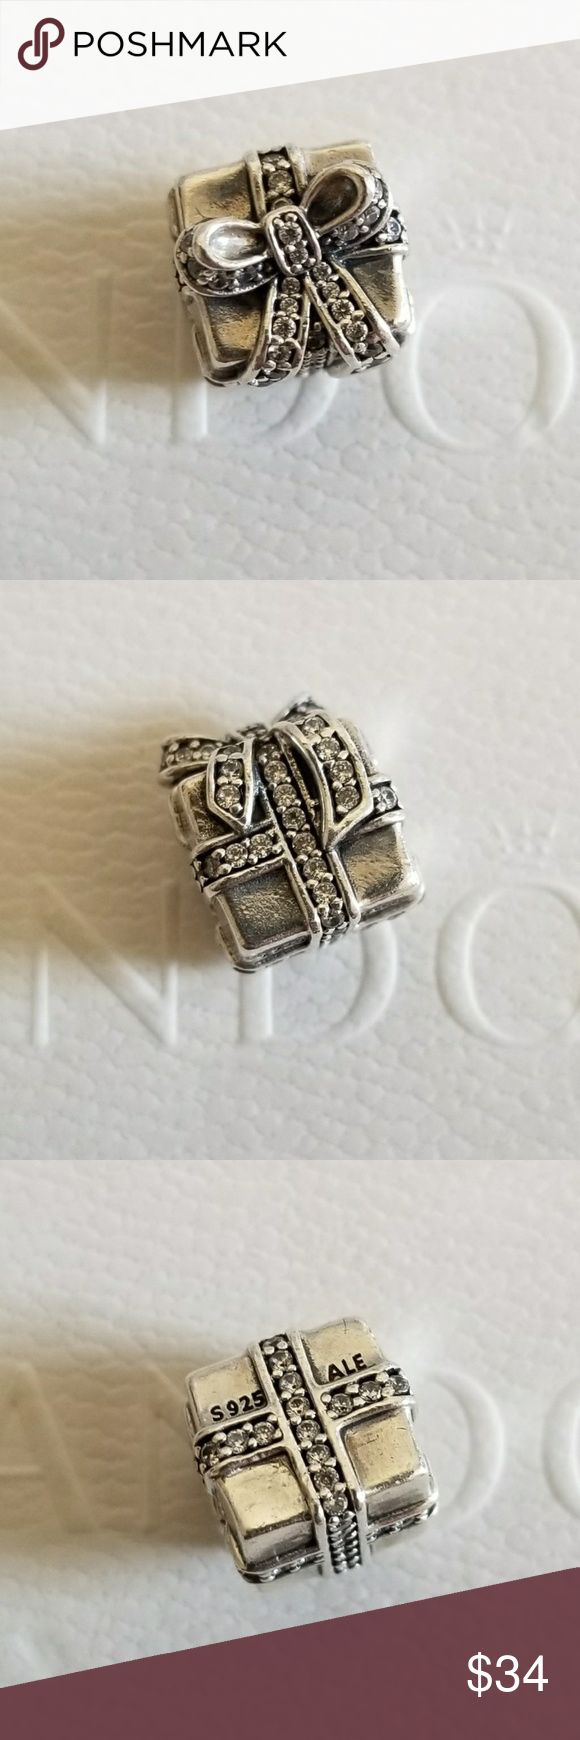 Pandora Sparkling Surprise CZ Charm 100% Authentic Pandora  Good condition  Properly stamped  Pandora stores offer lifetime free cleaning No box included  Bundle for discounts Pandora Jewelry Bracelets